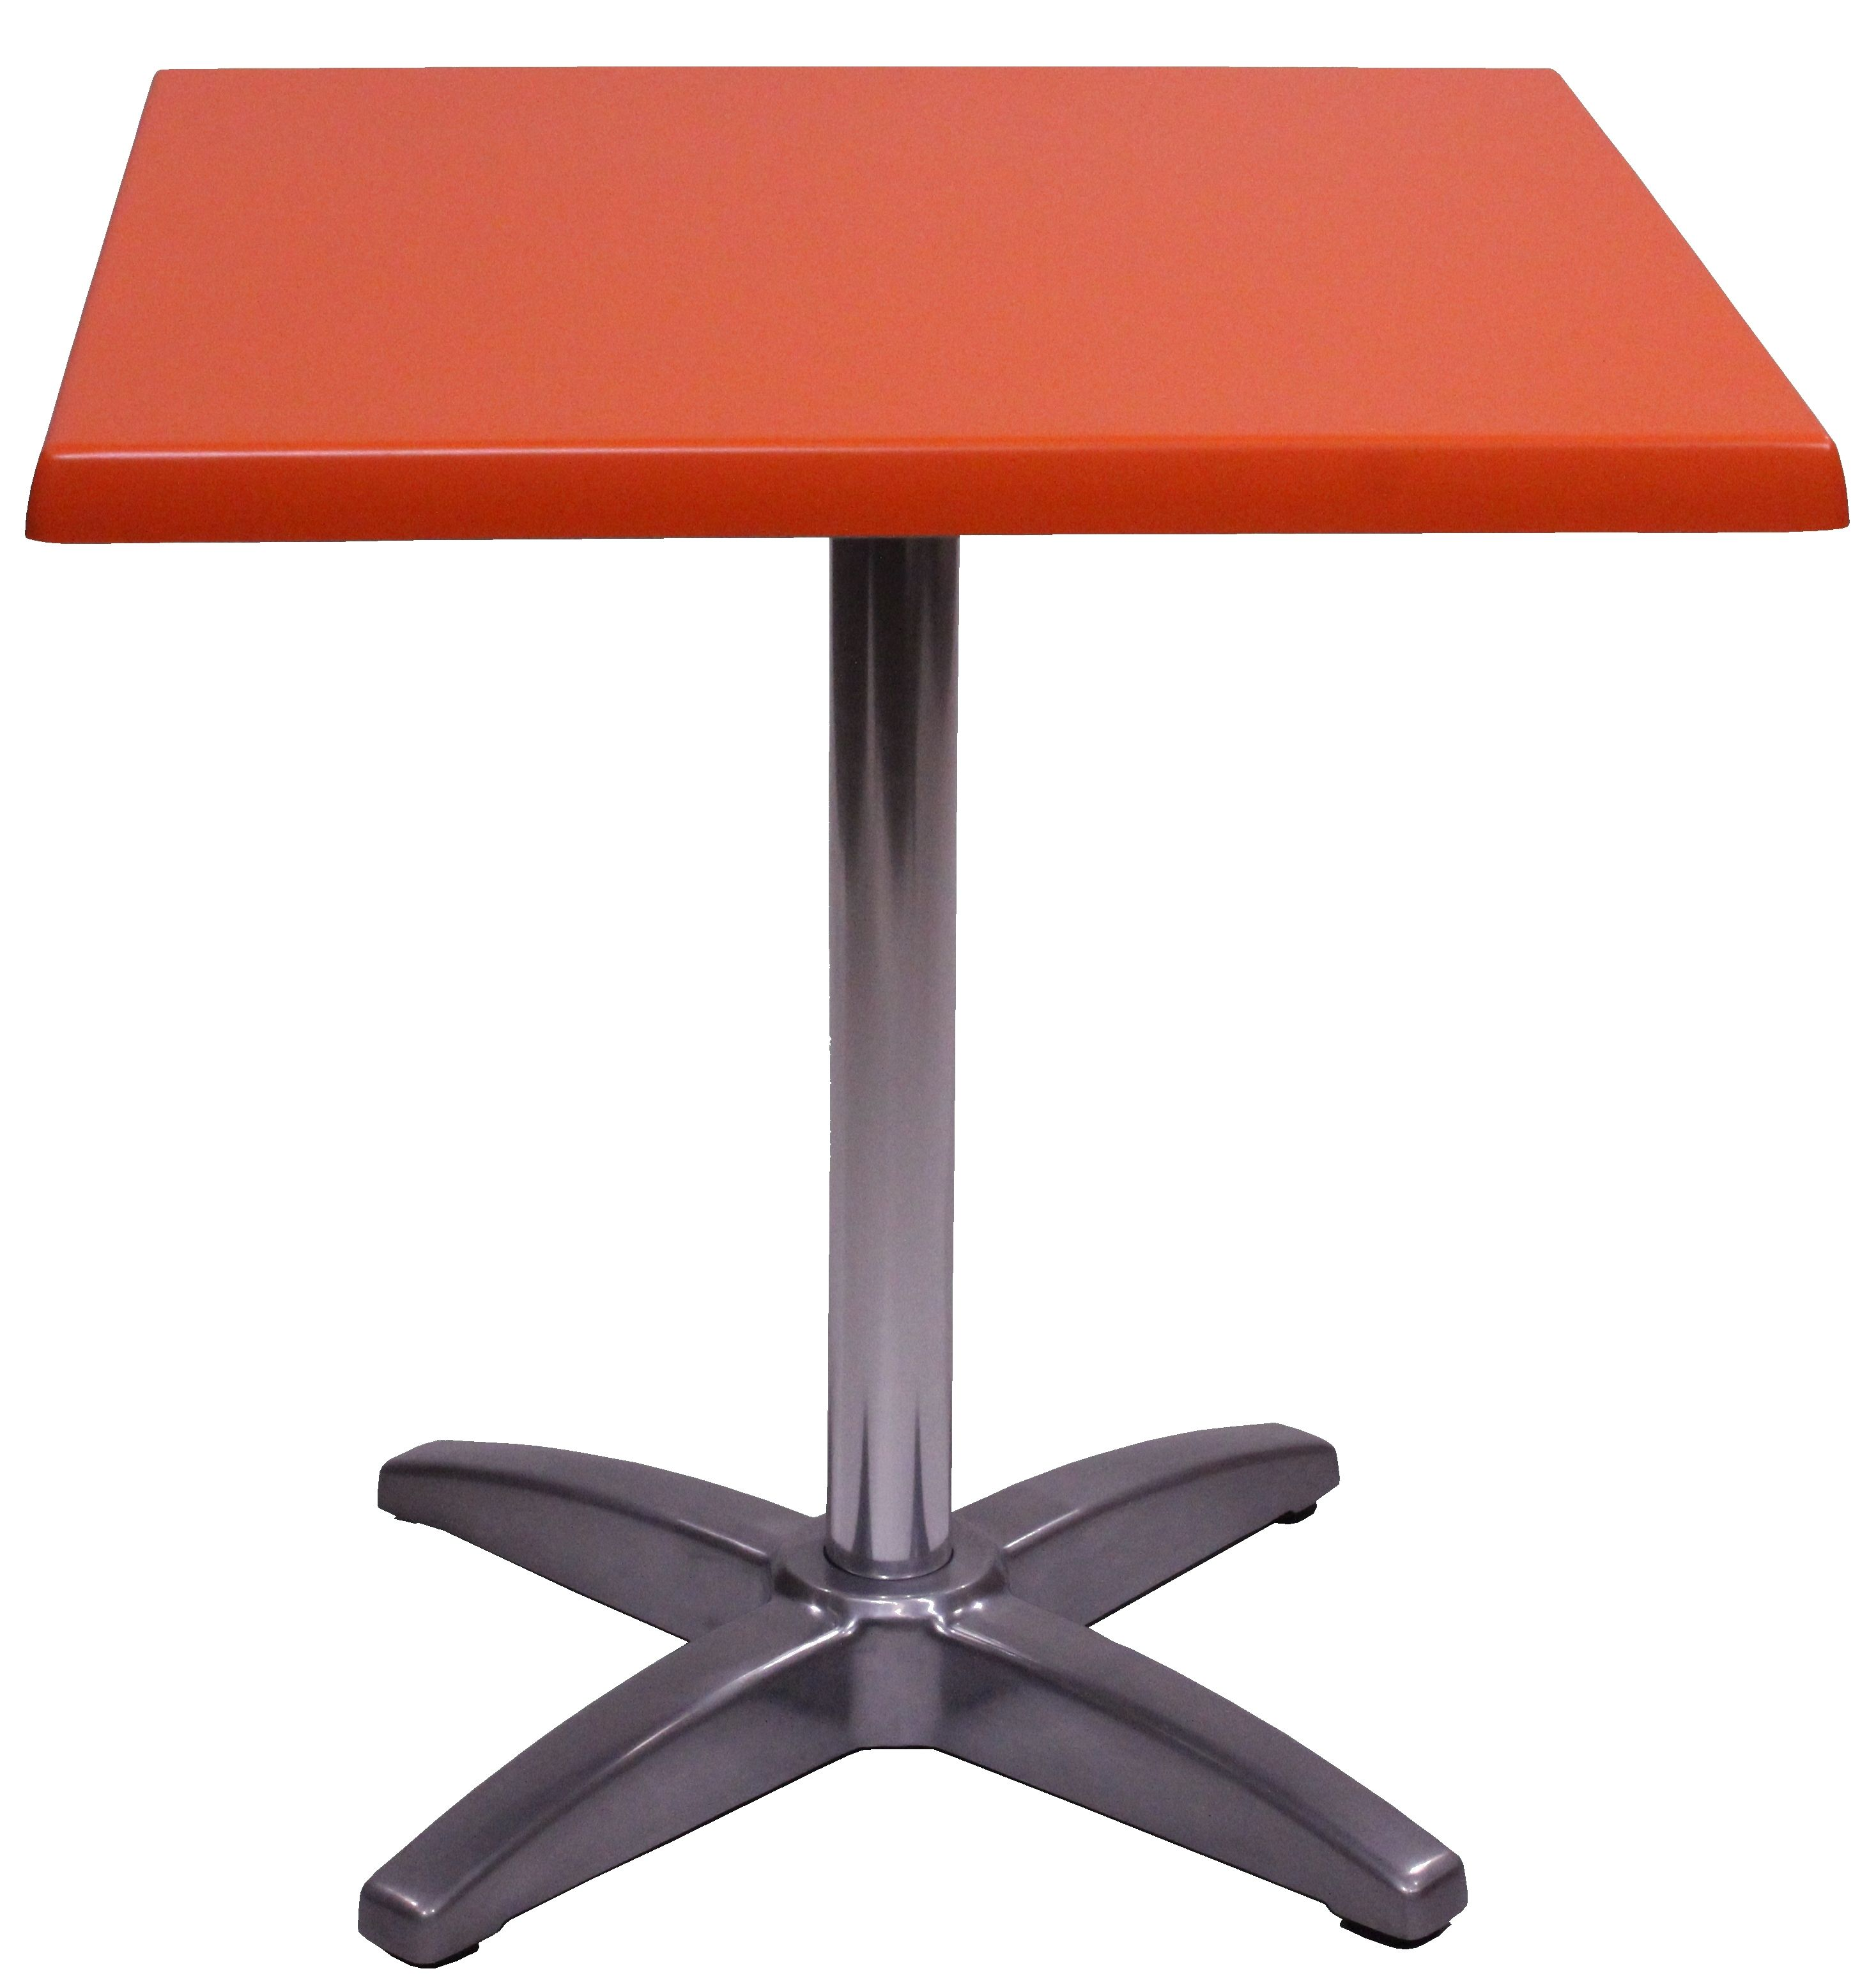 Table Exterieur De Restaurant Gueridon Solea 70x70 Plateau Stratifie Moule Orange Usage Interieur